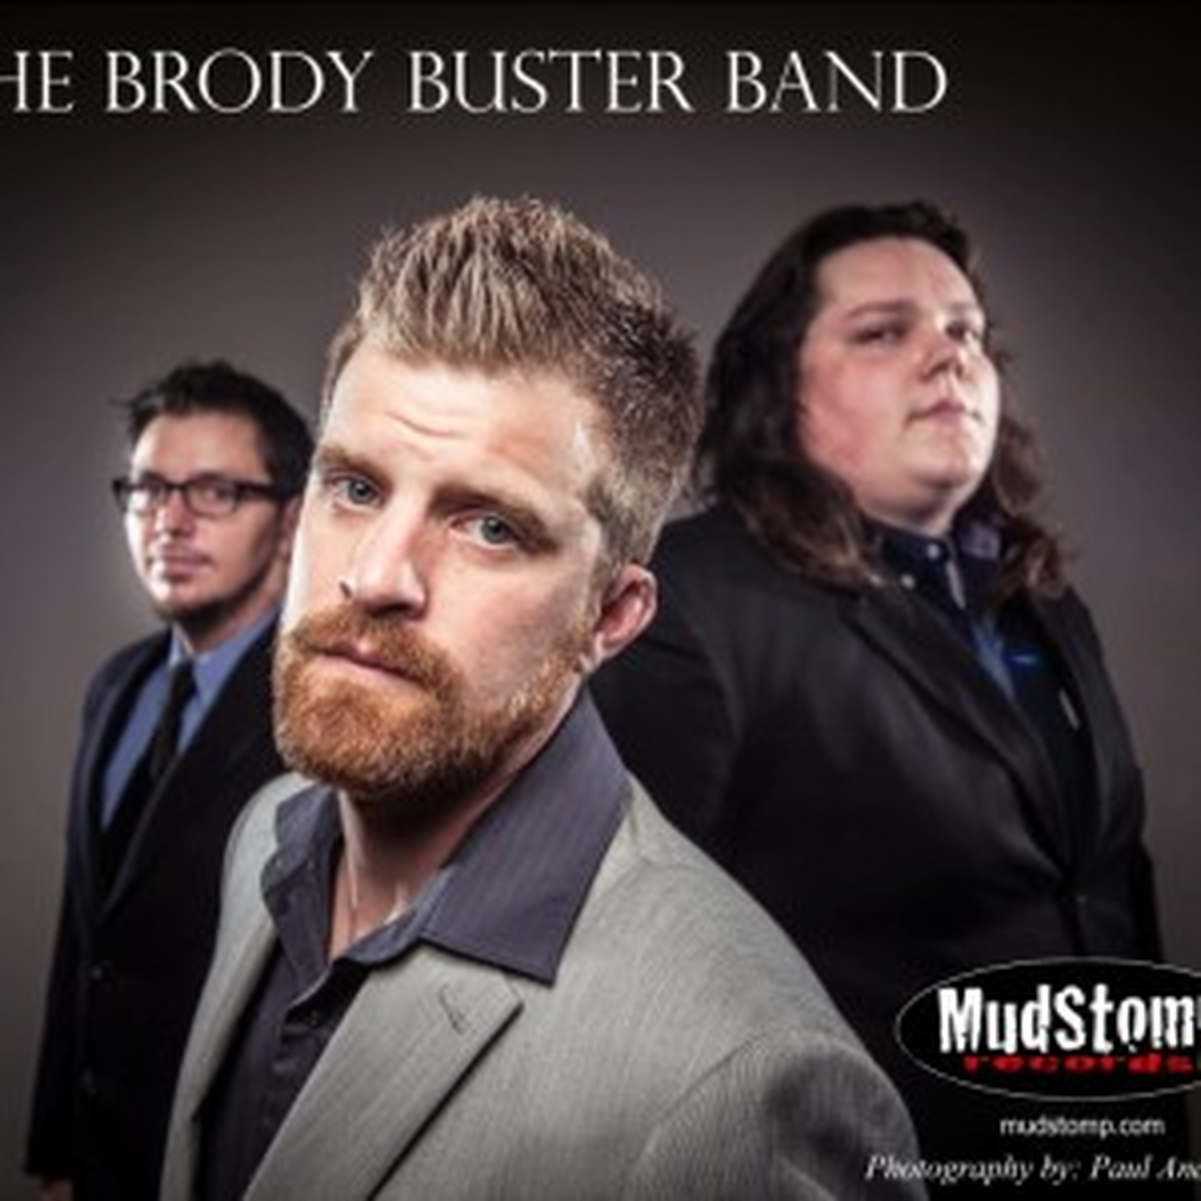 The Brody Buster Band